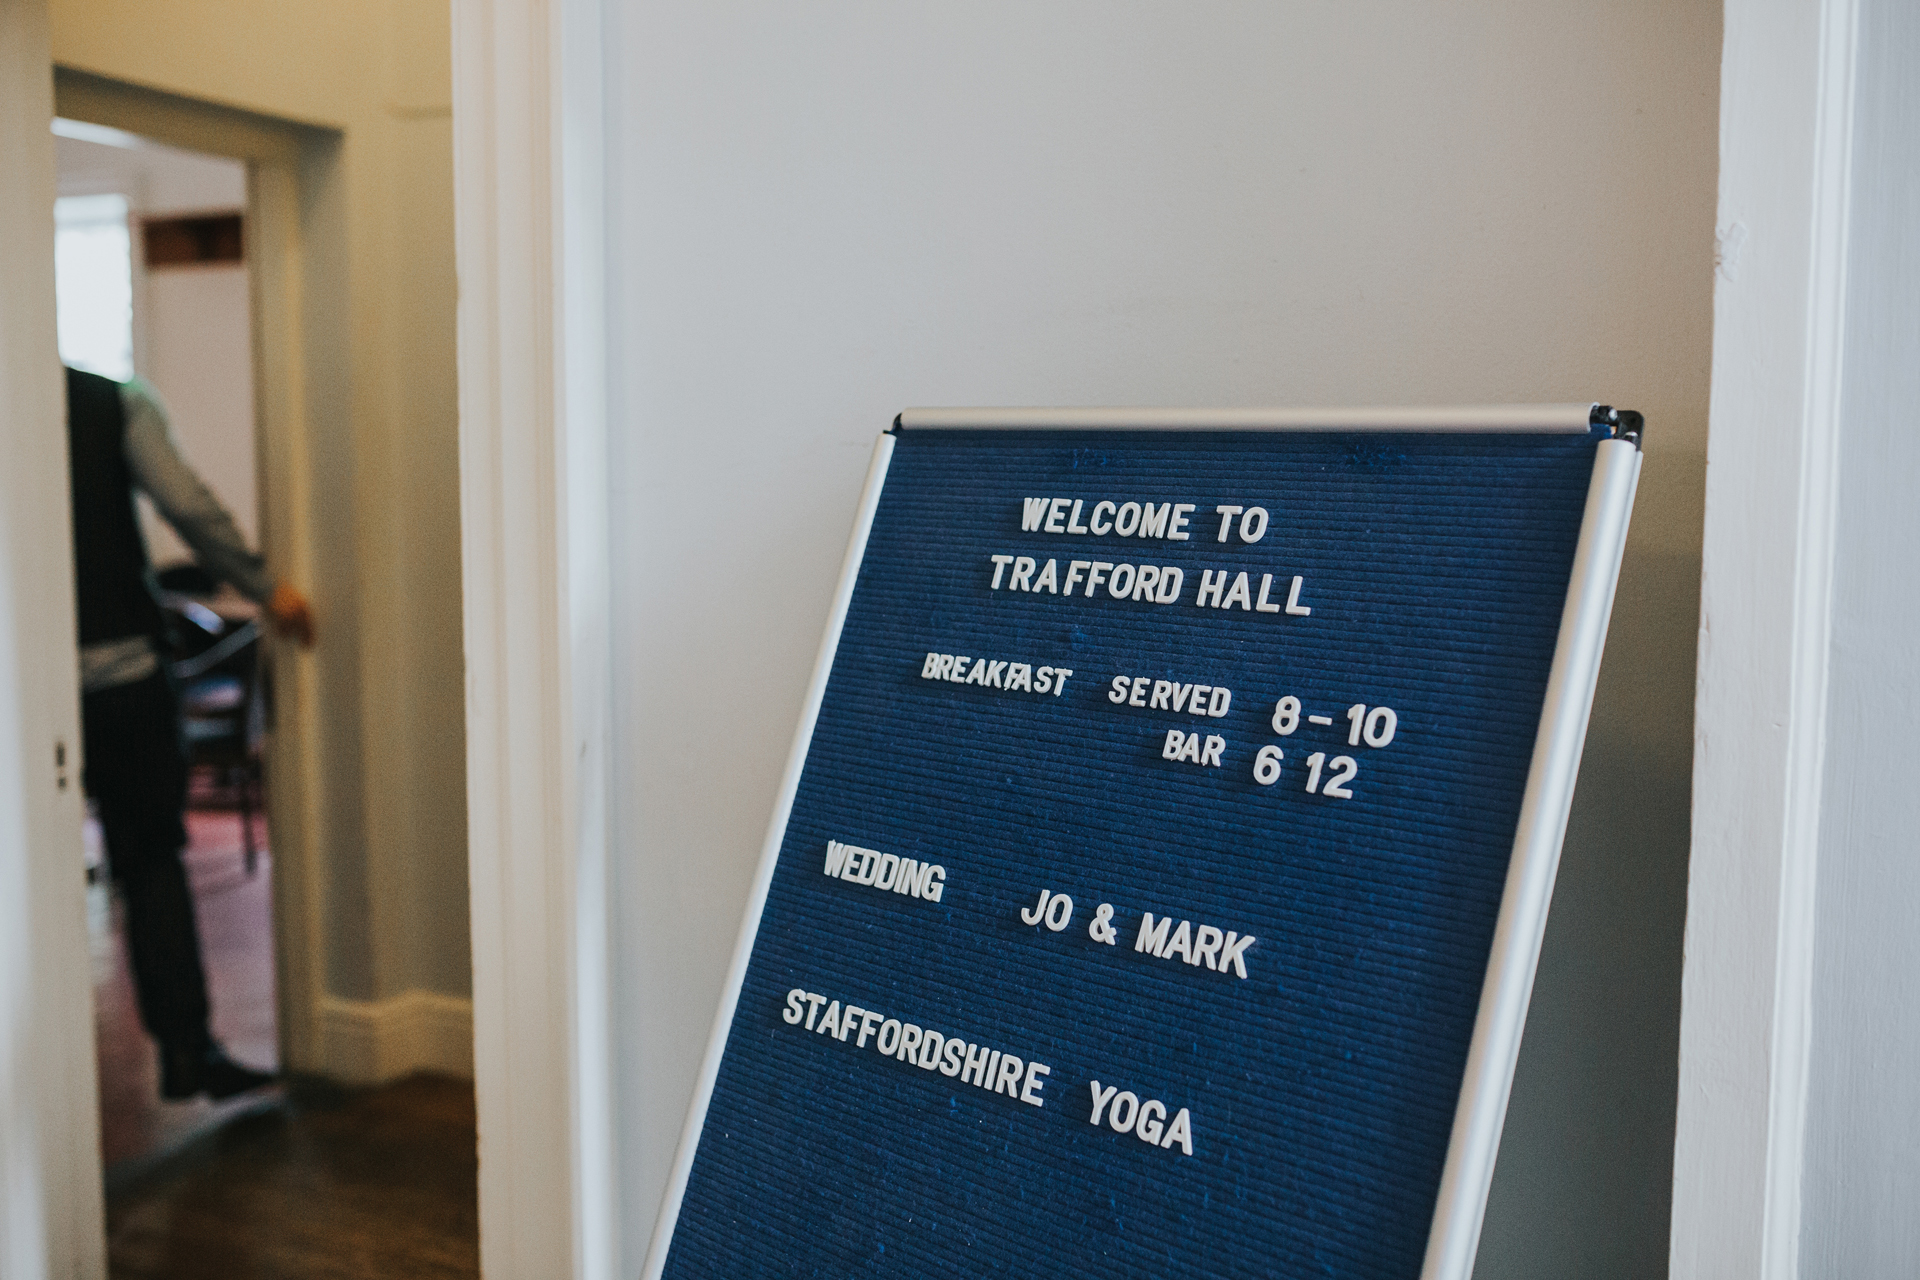 Welcome to Trafford Hall sign.